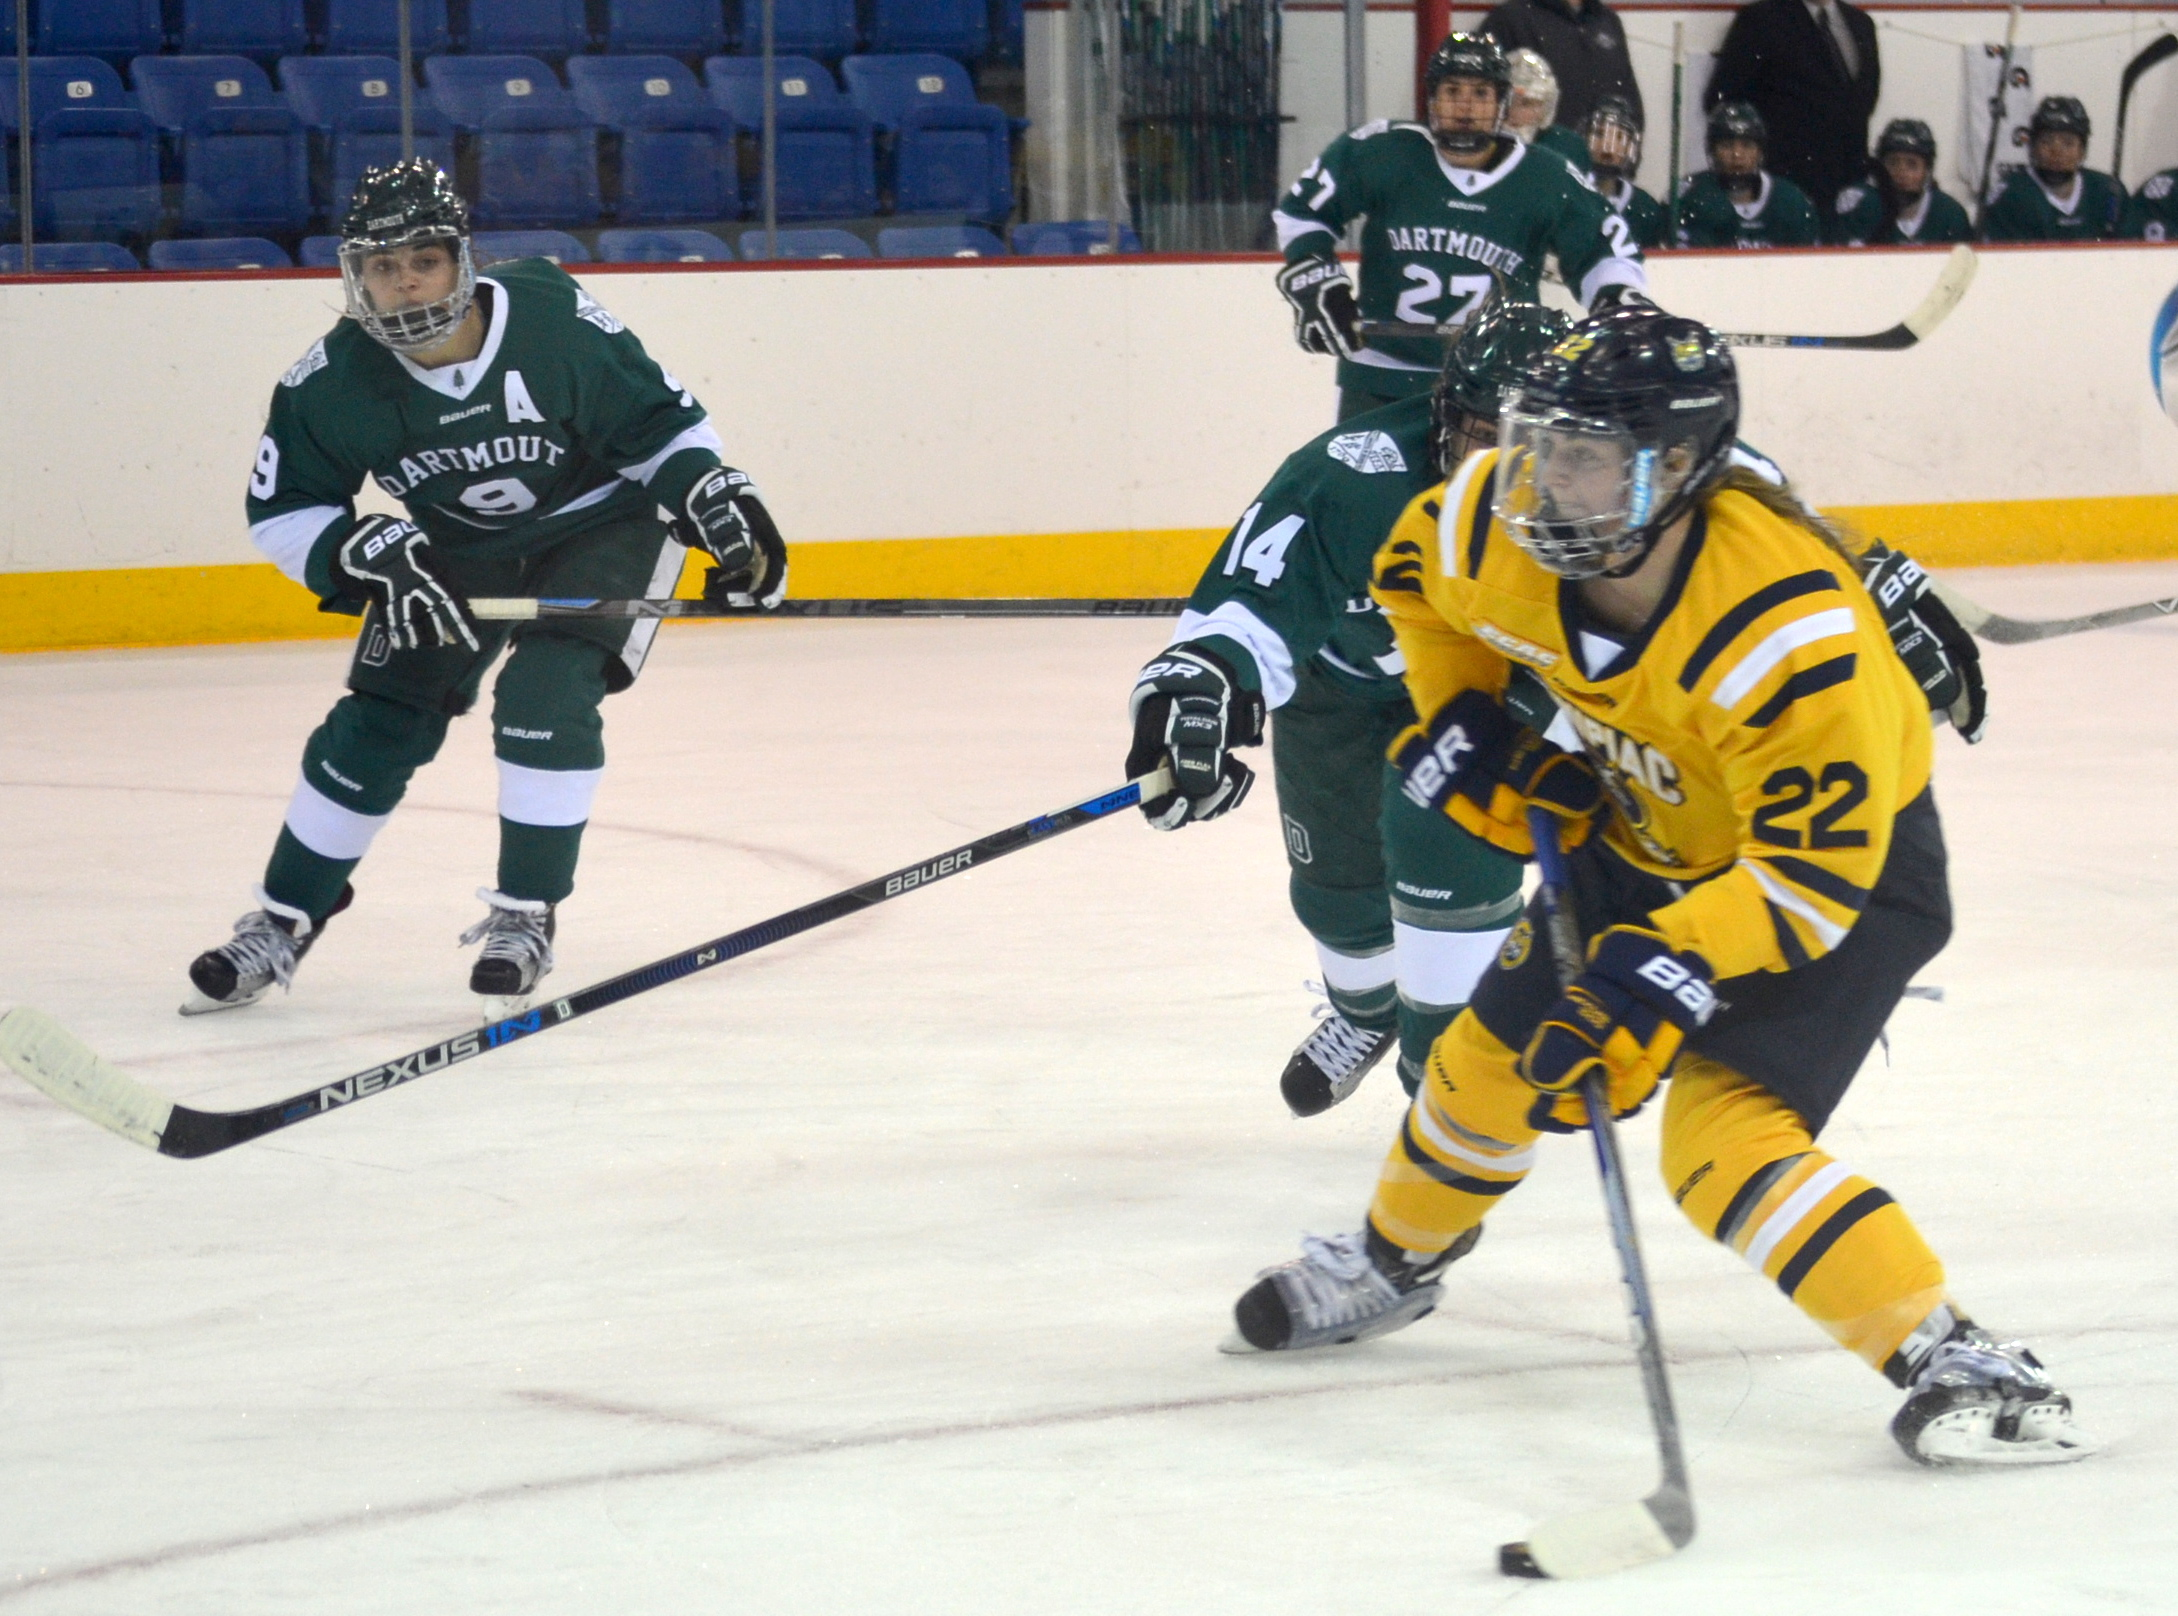 T.T Cianfarano aims before putting the Bobcats up 3-0 vs Dartmouth 12/4/15